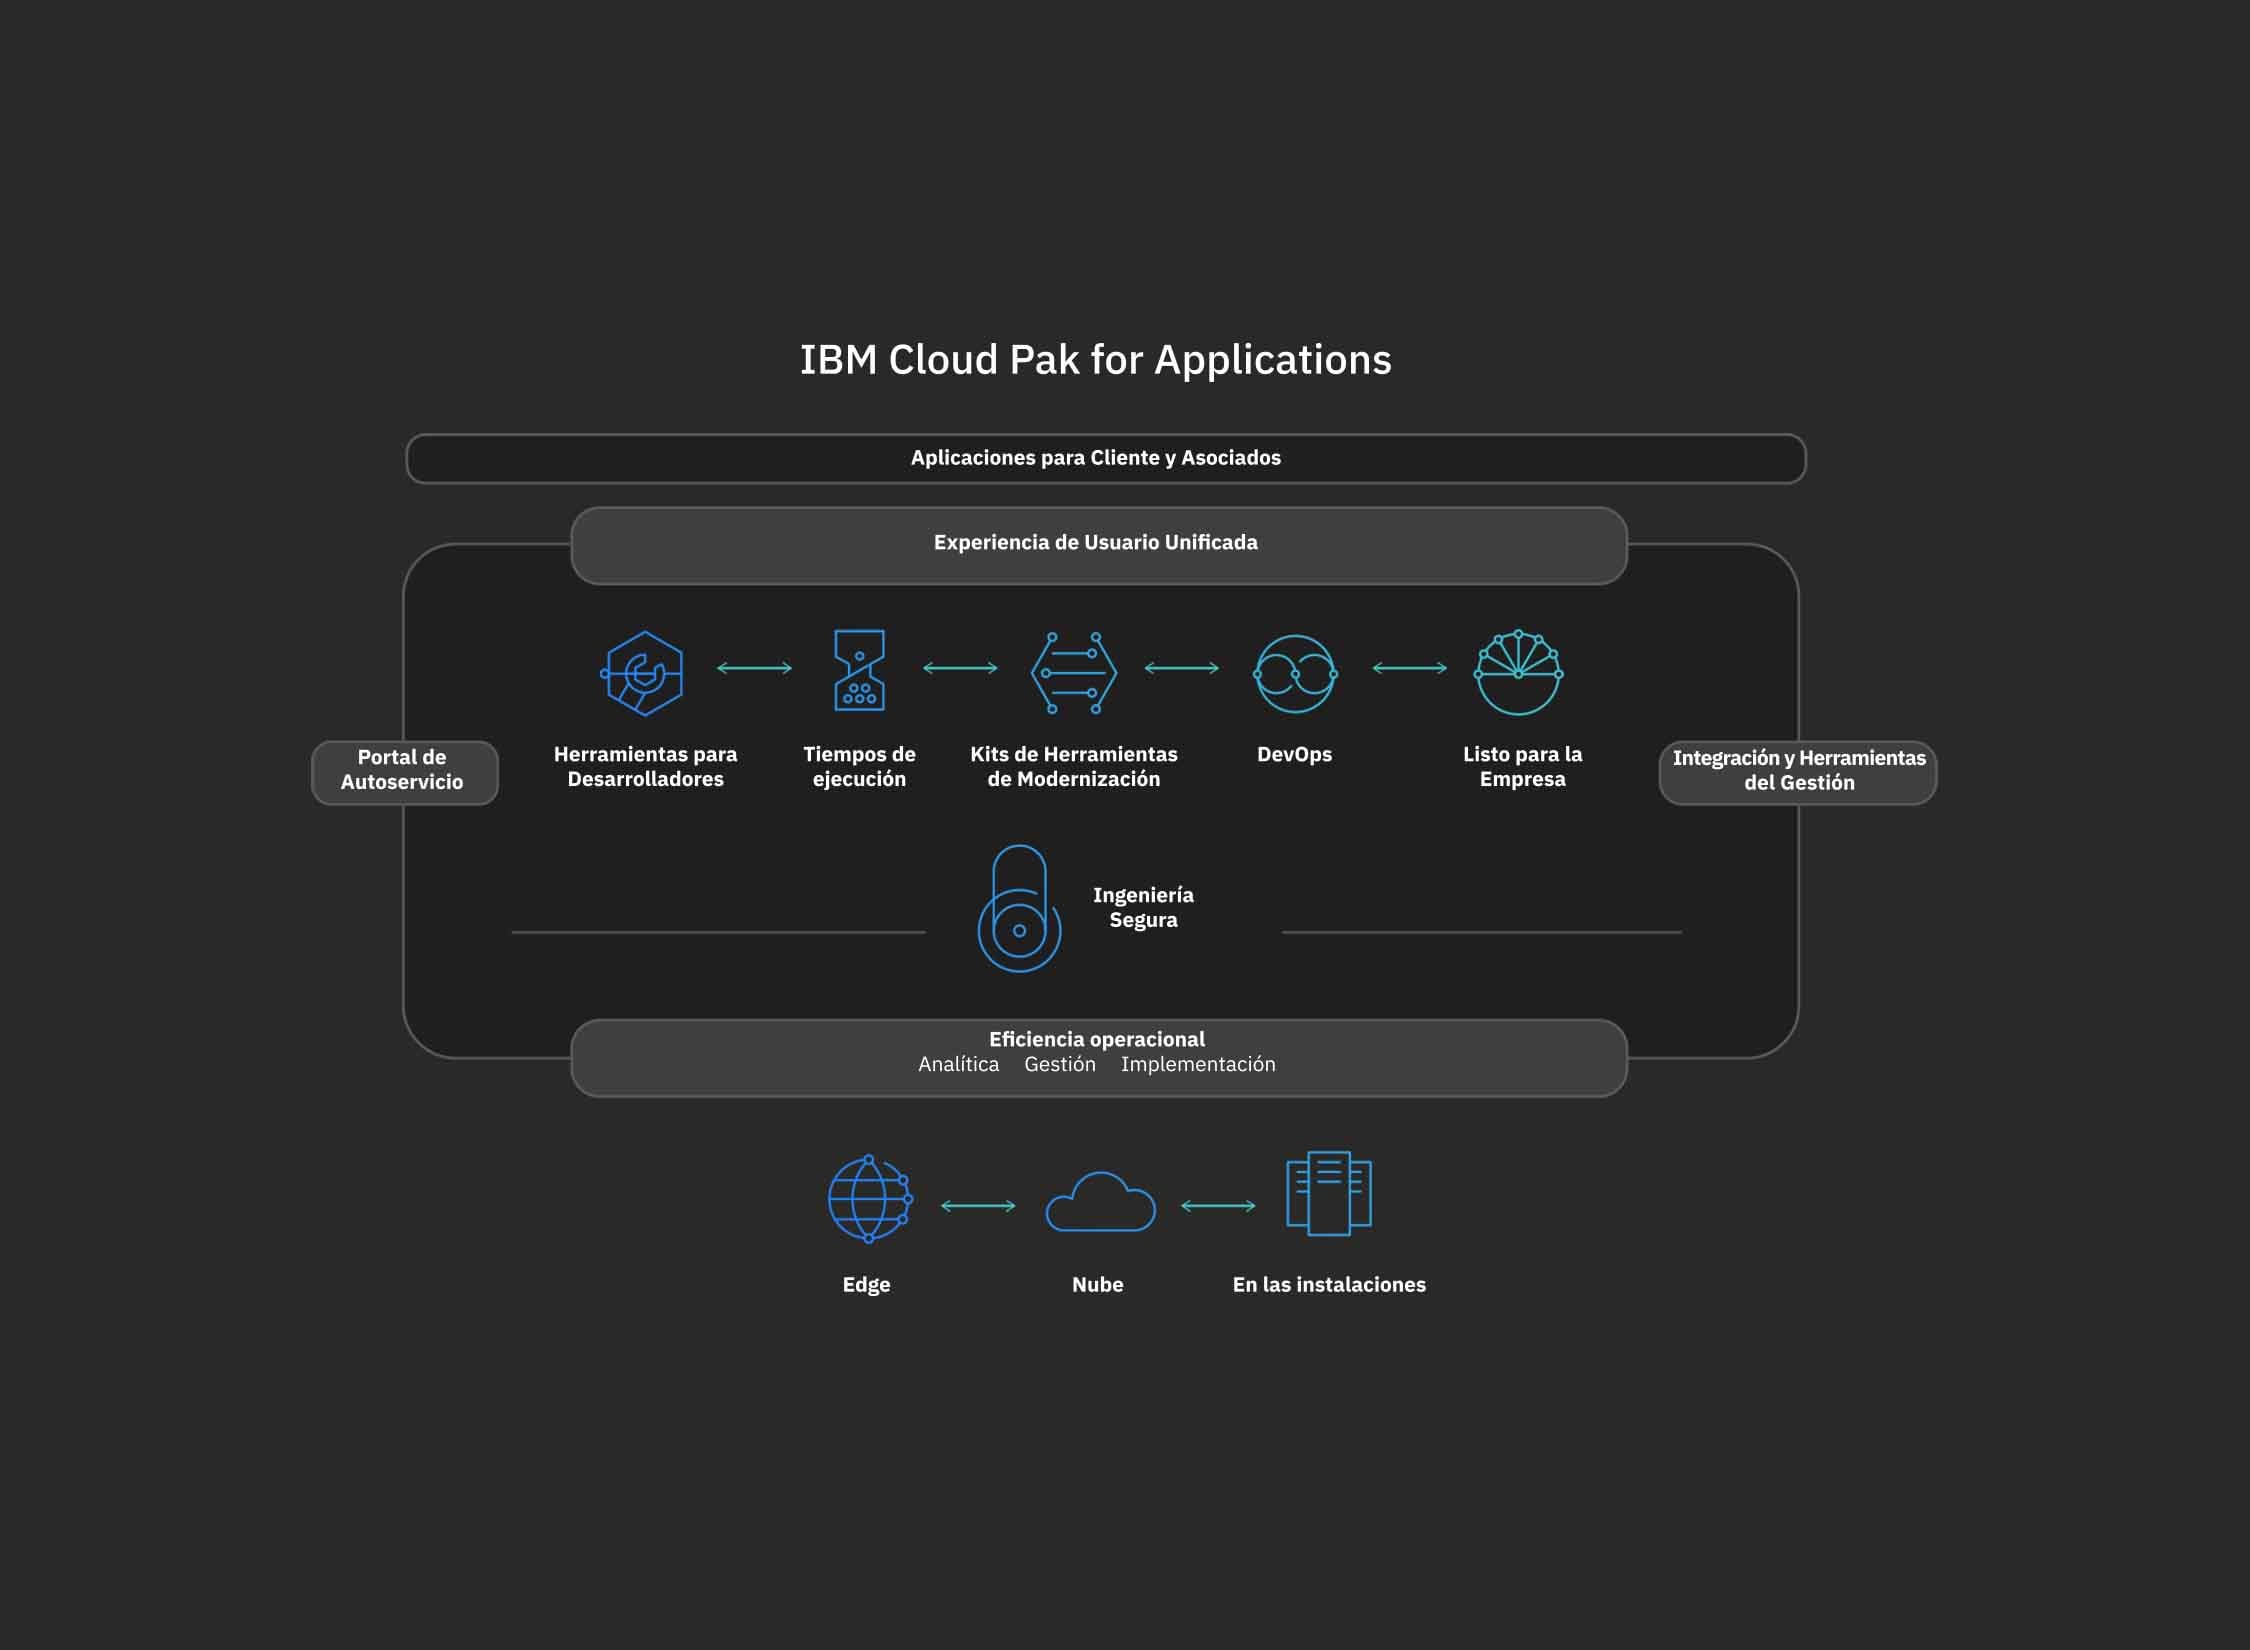 diagrama de cómo funciona IBM Cloud Pak for Application con los datos